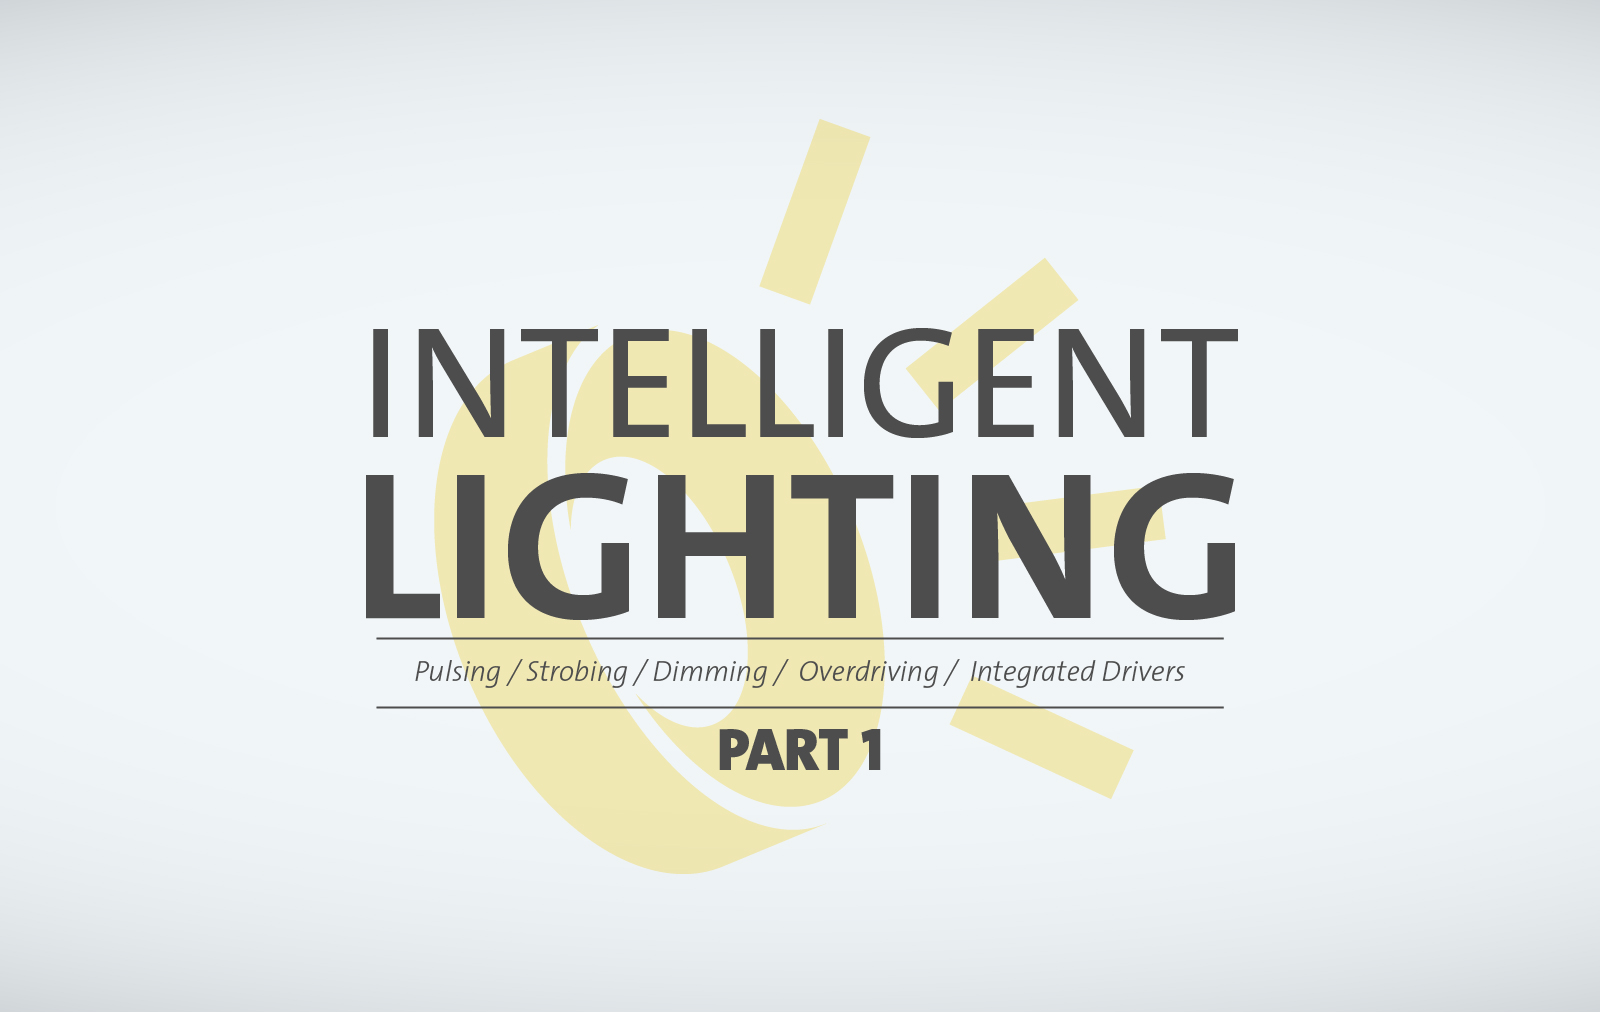 Intelligent Lighting - Part 1